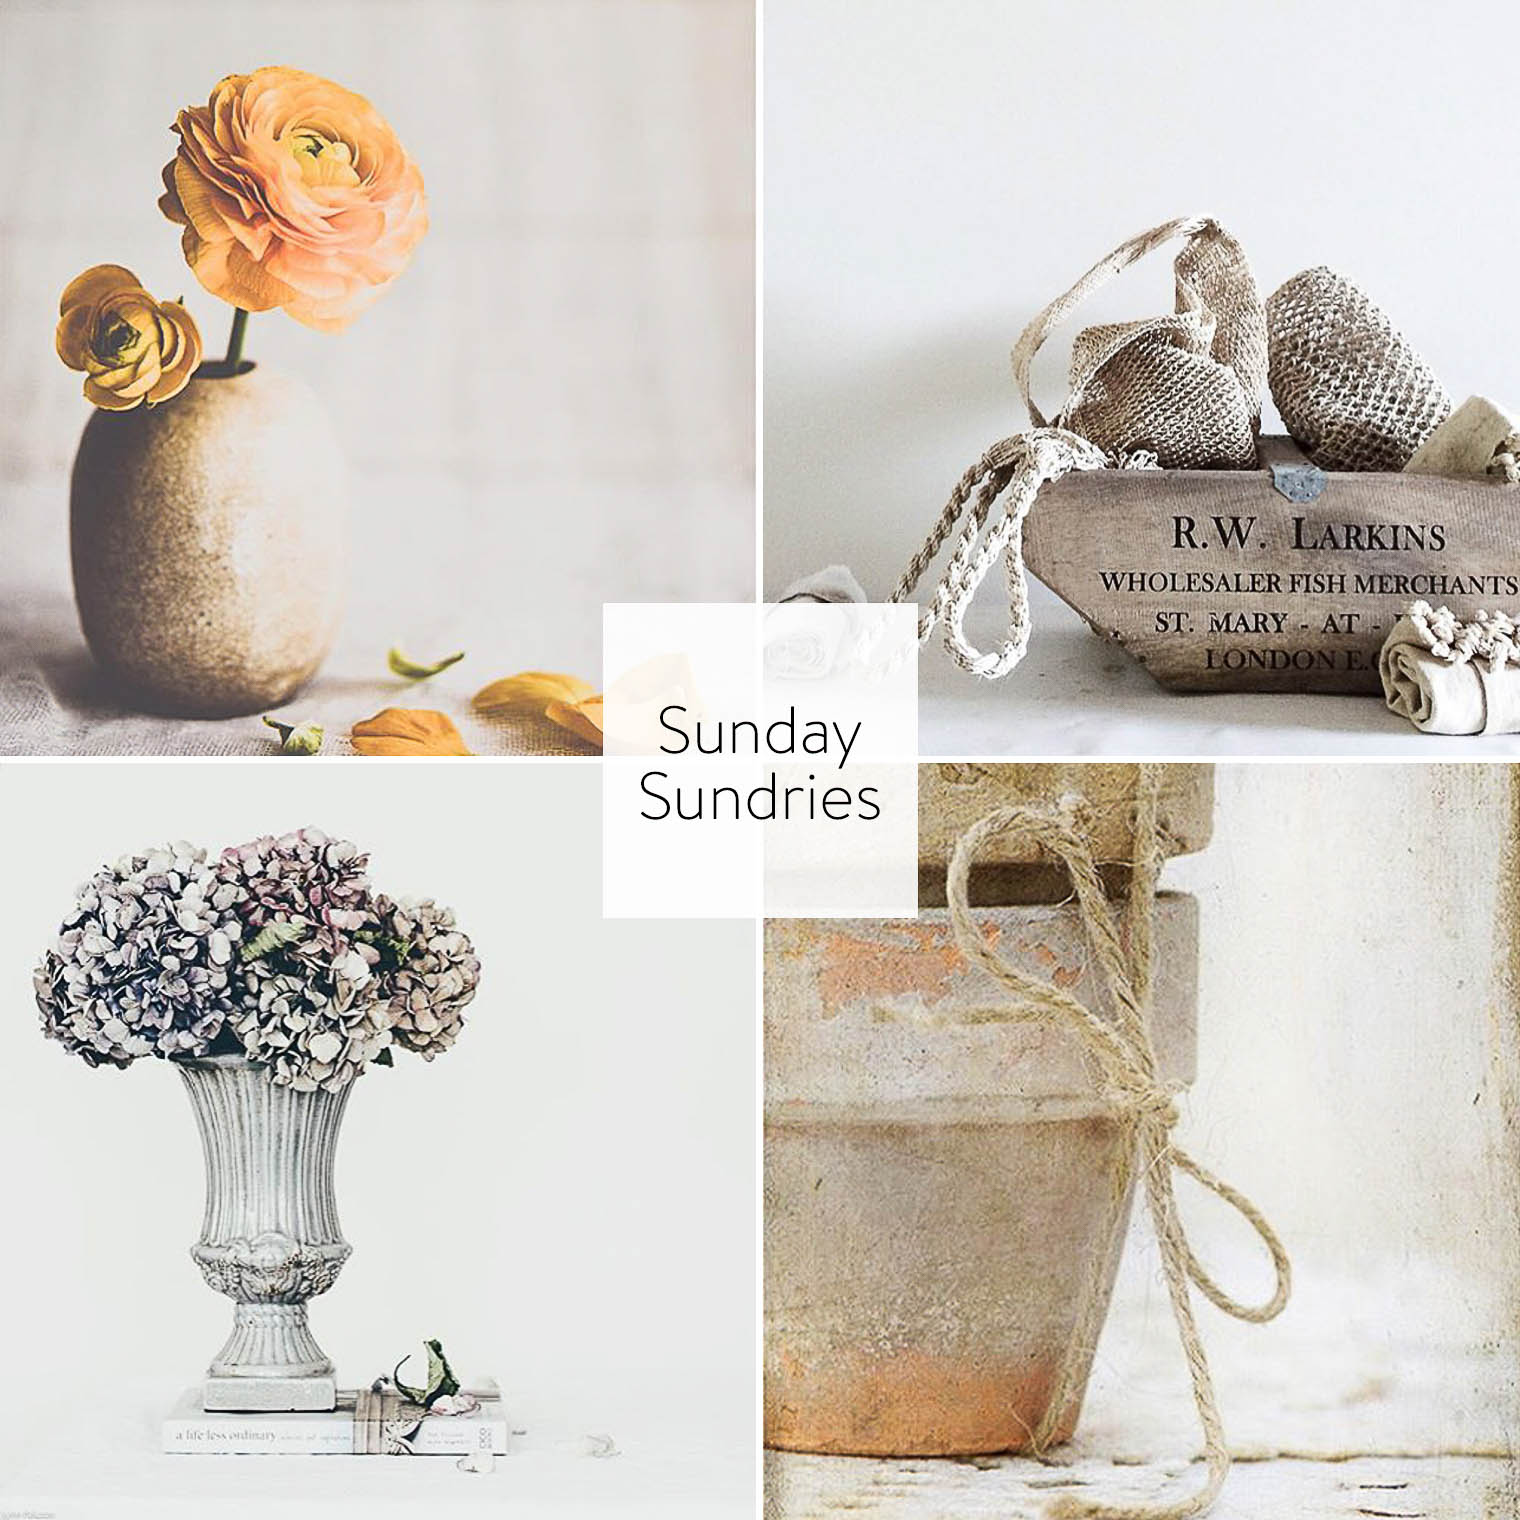 Sunday Sundries April 10, Keeping With the Times